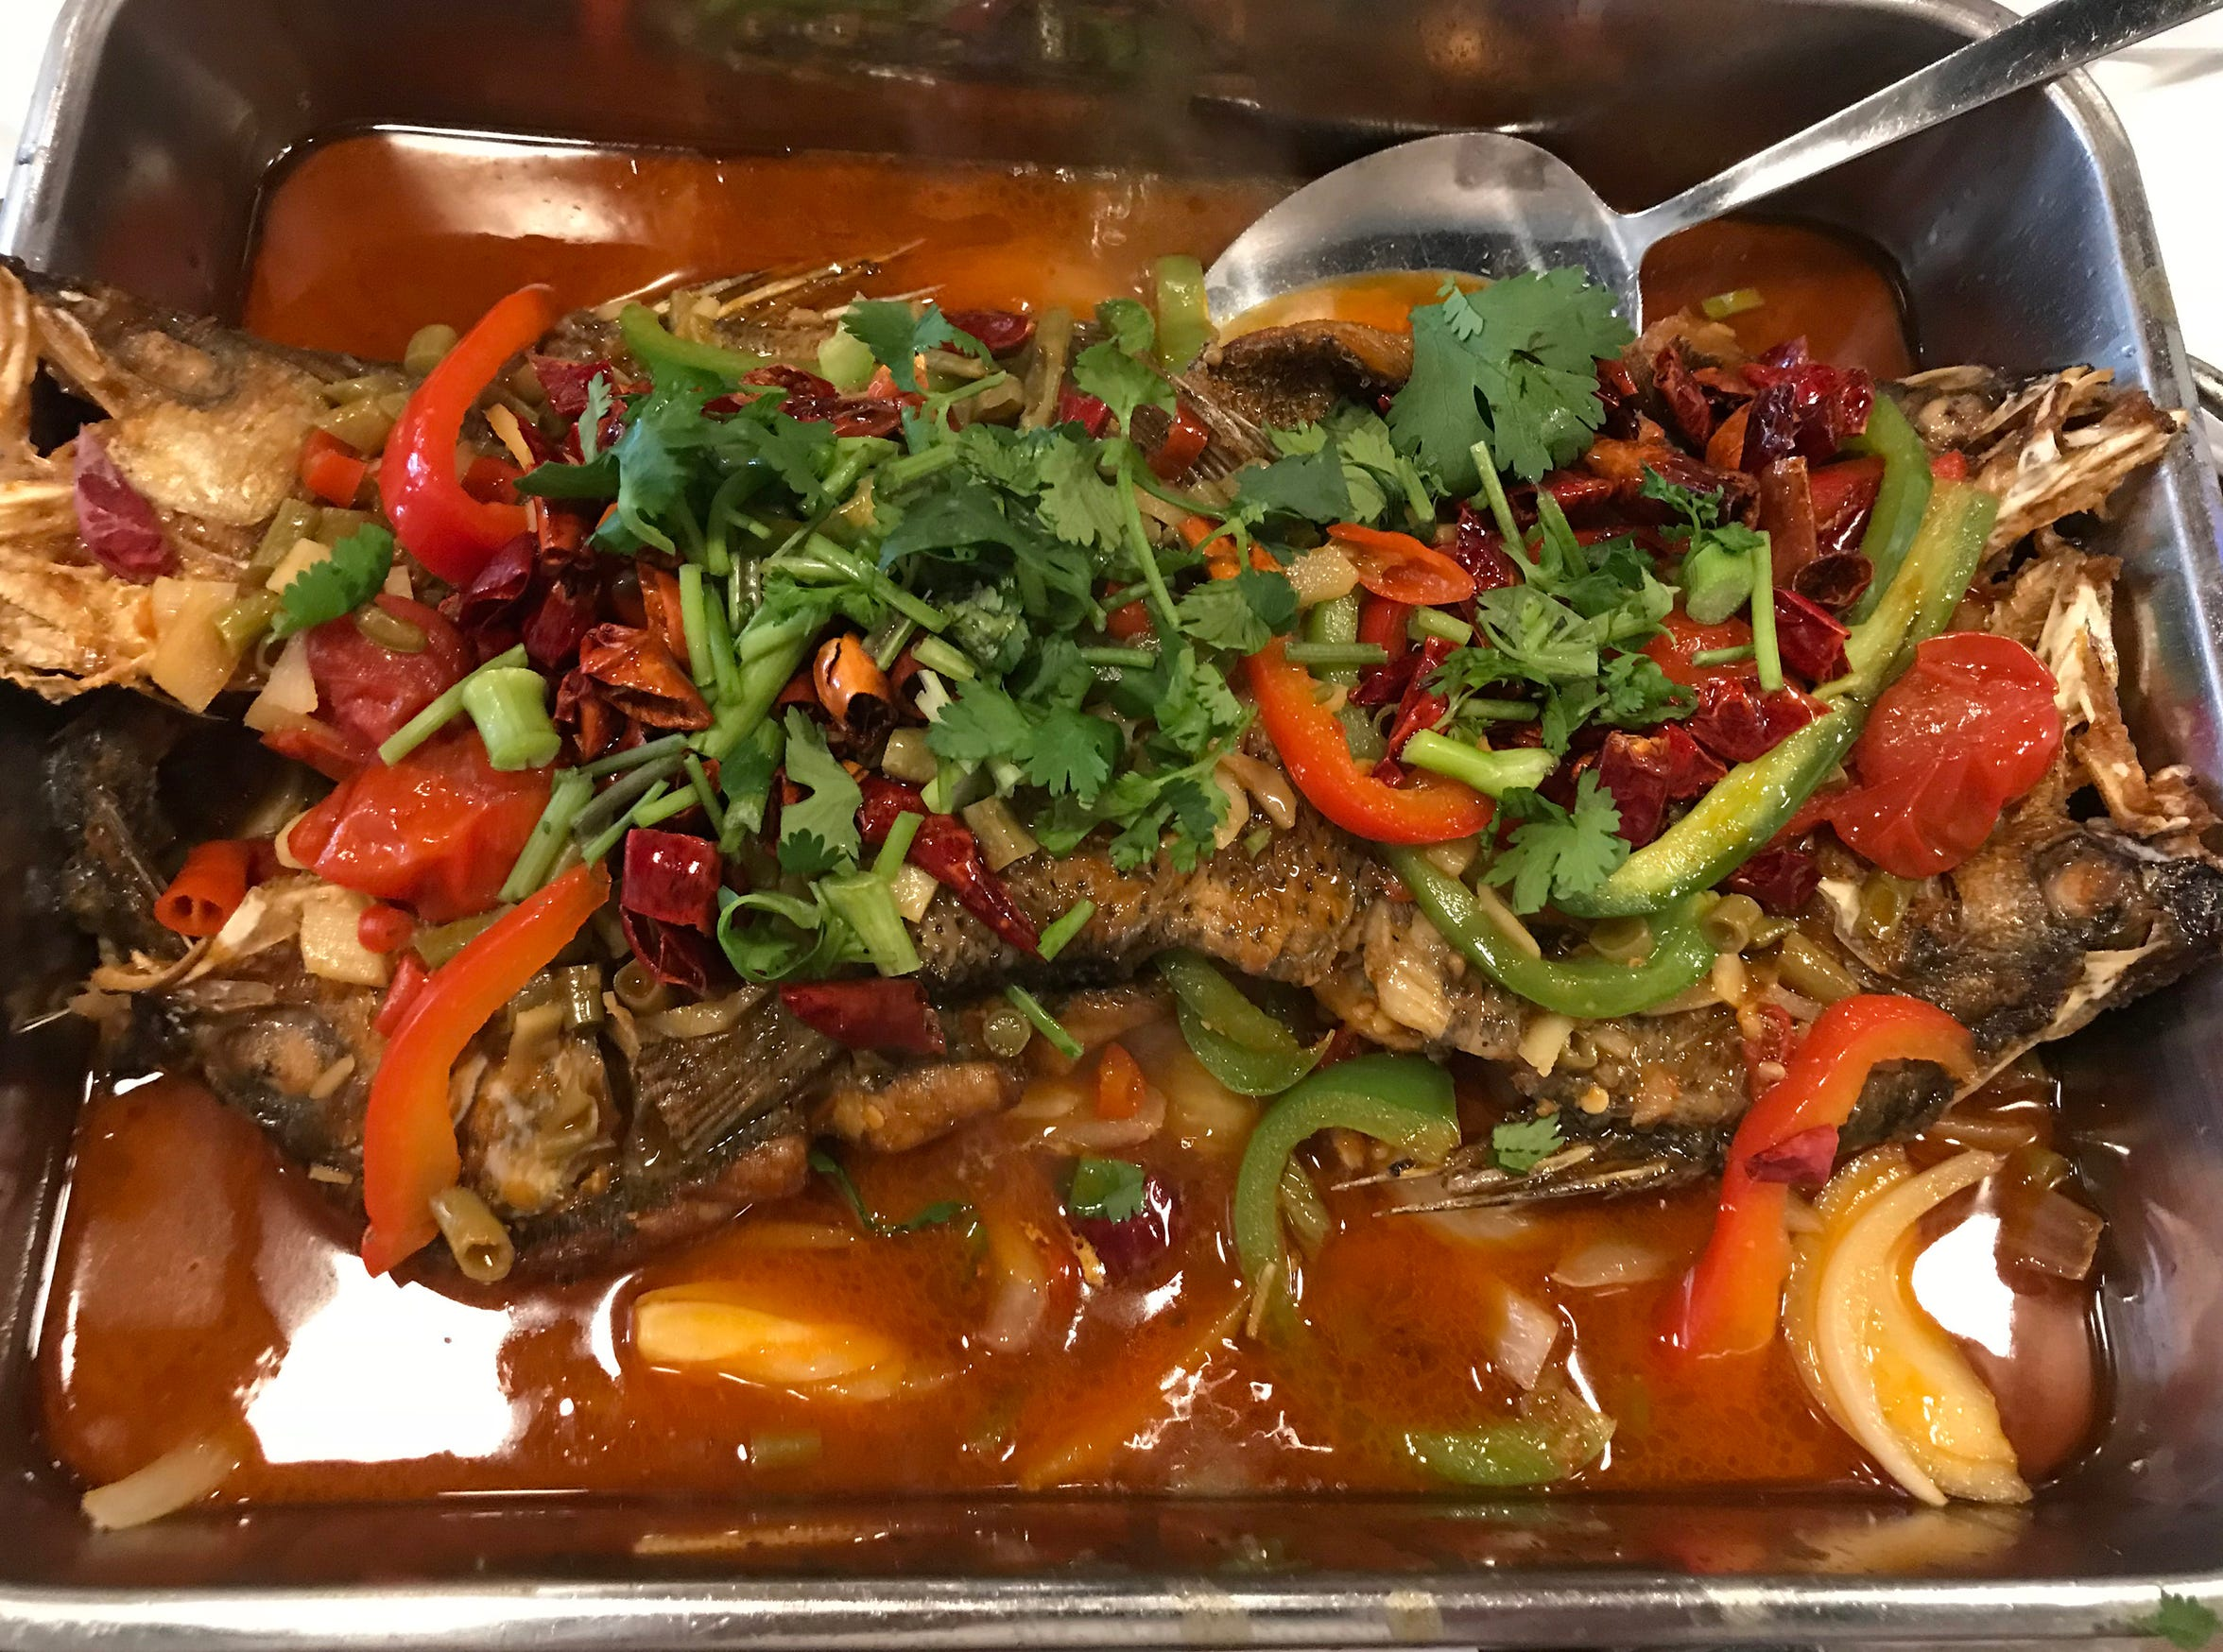 Beer-braised fish, a special that is smothered in sweet and hot peppers and cilantro, is kept warm in a steel hotpot over a flame at the table. It's served at Asian Fusion, 1609 E. North Ave.